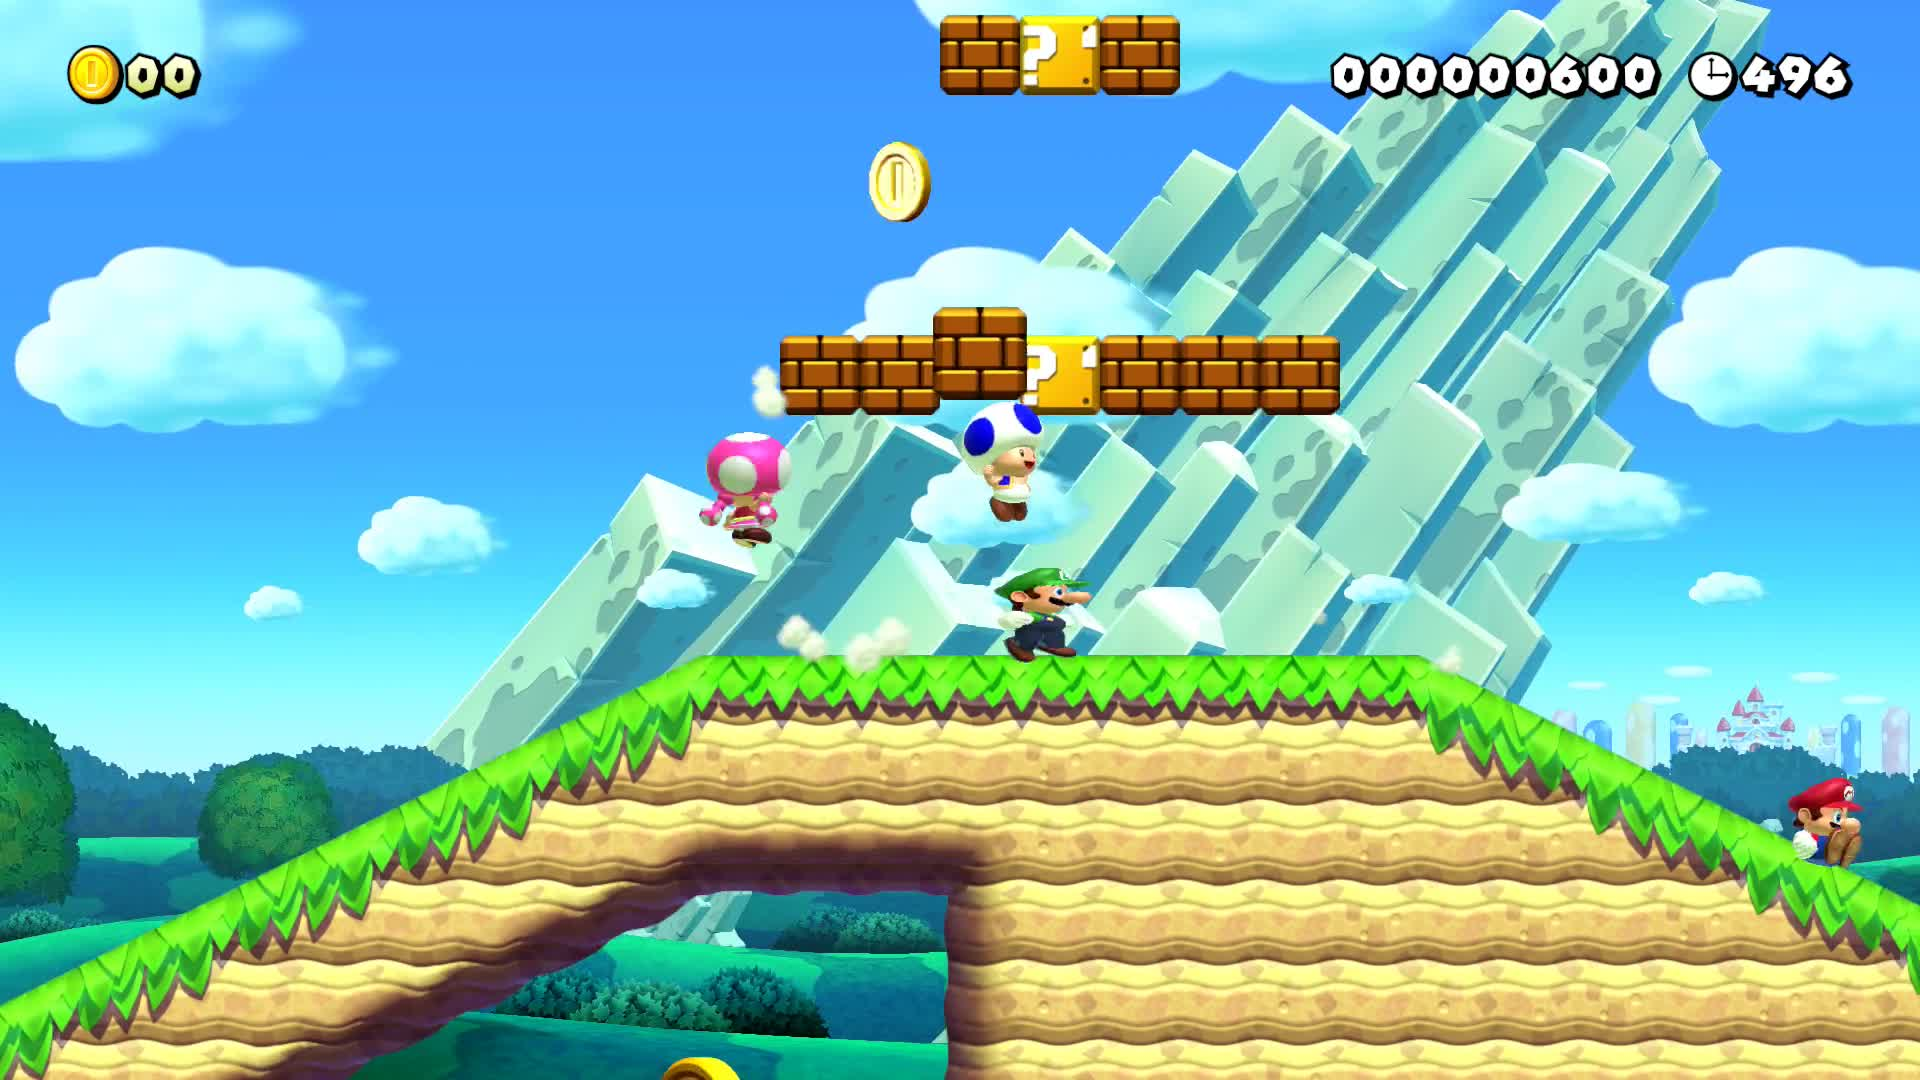 Mario Maker 2 players are turning ON their brains